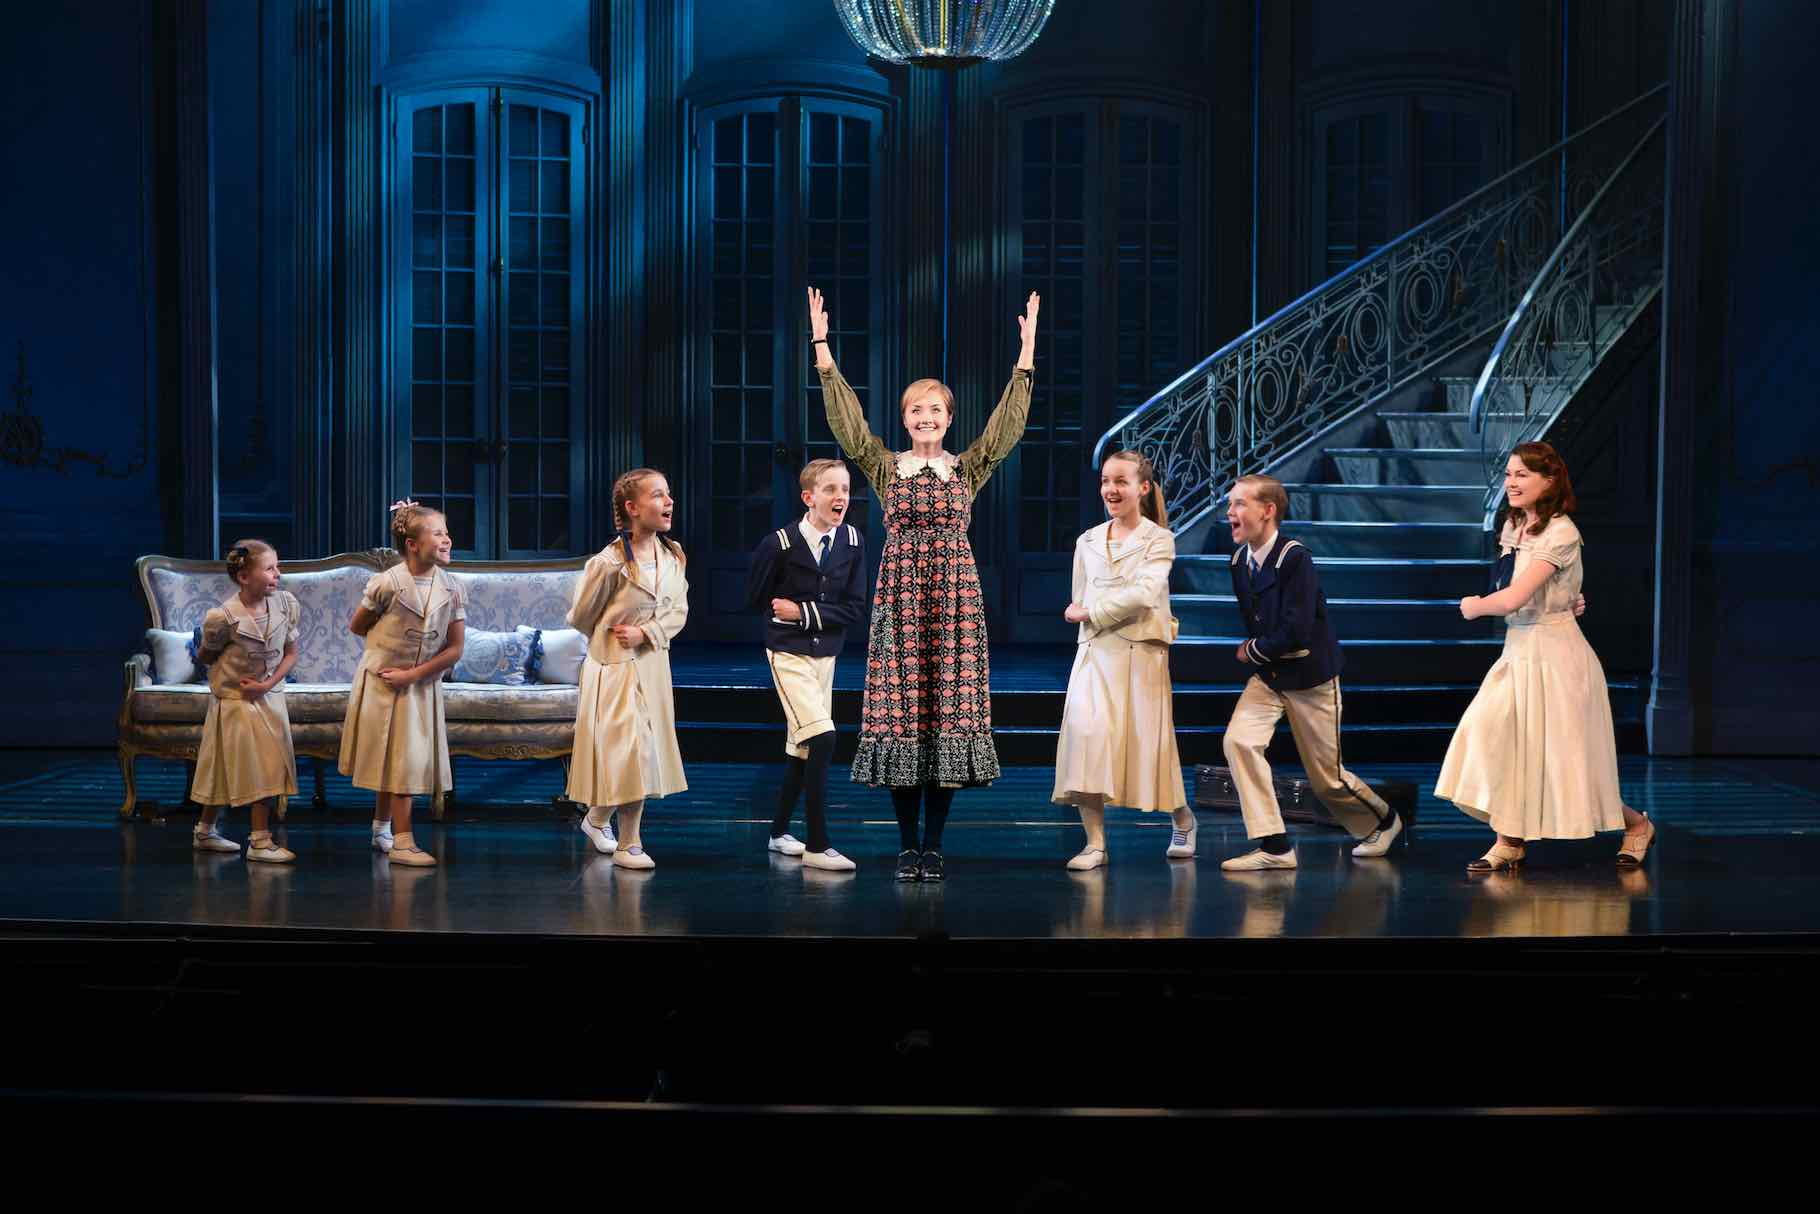 The Sound Of Music Serenades Mastercard Theatres, MBS